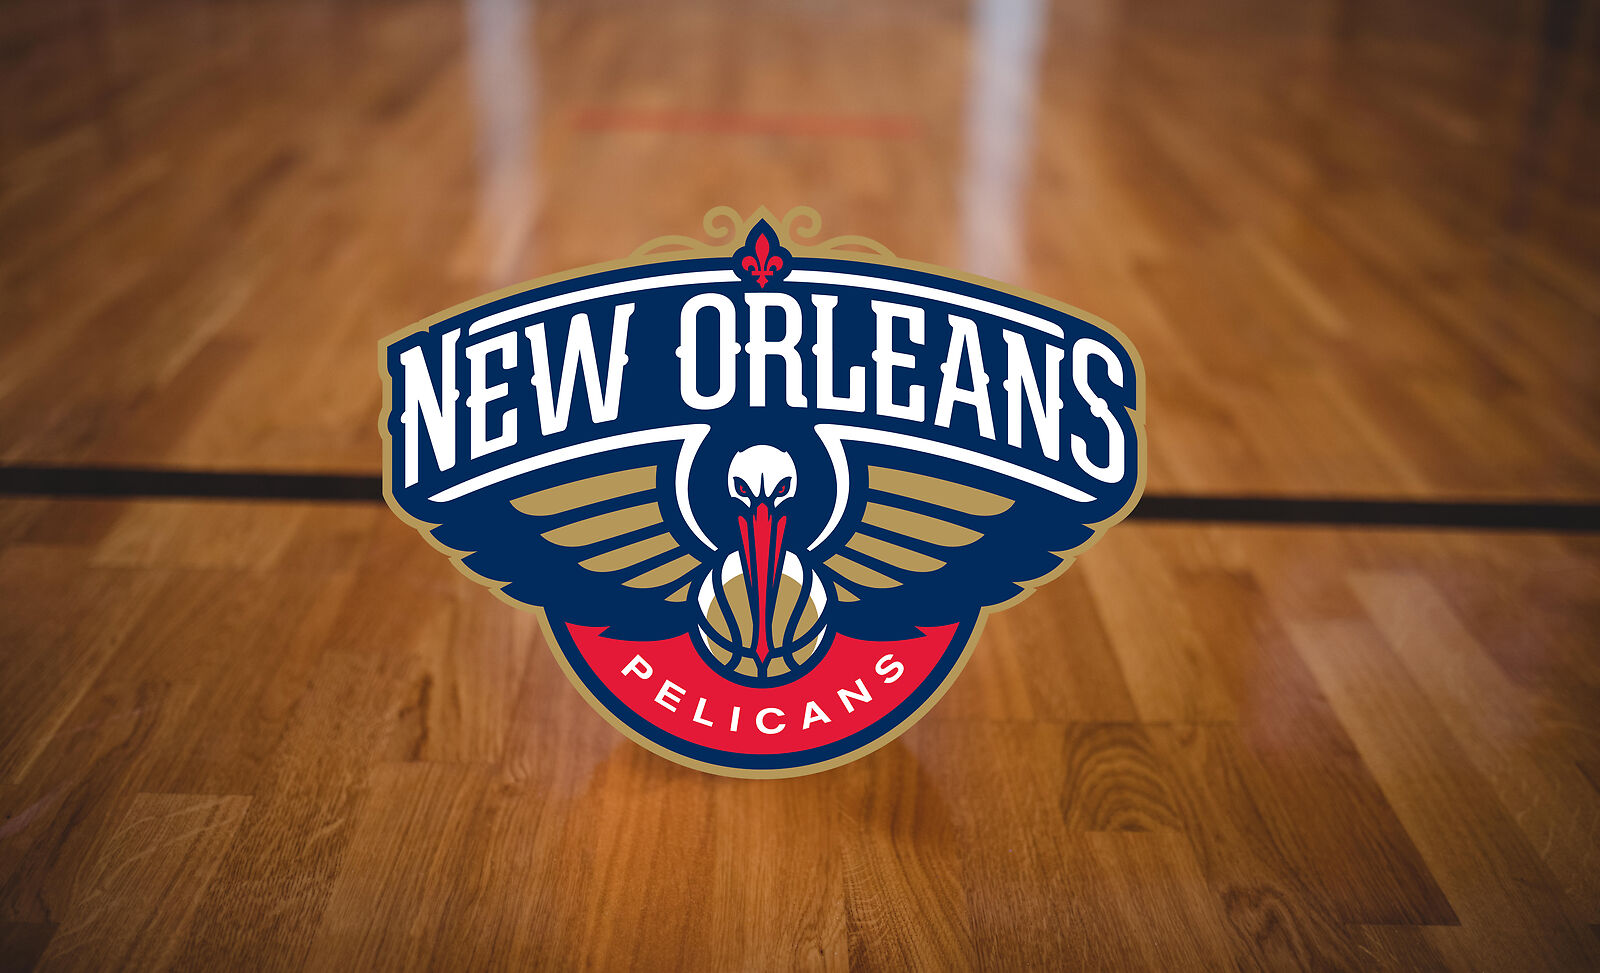 2018 New Orleans Pelicans Season Tickets - Season Package (Includes Tickets for all Regular Season Home Games)